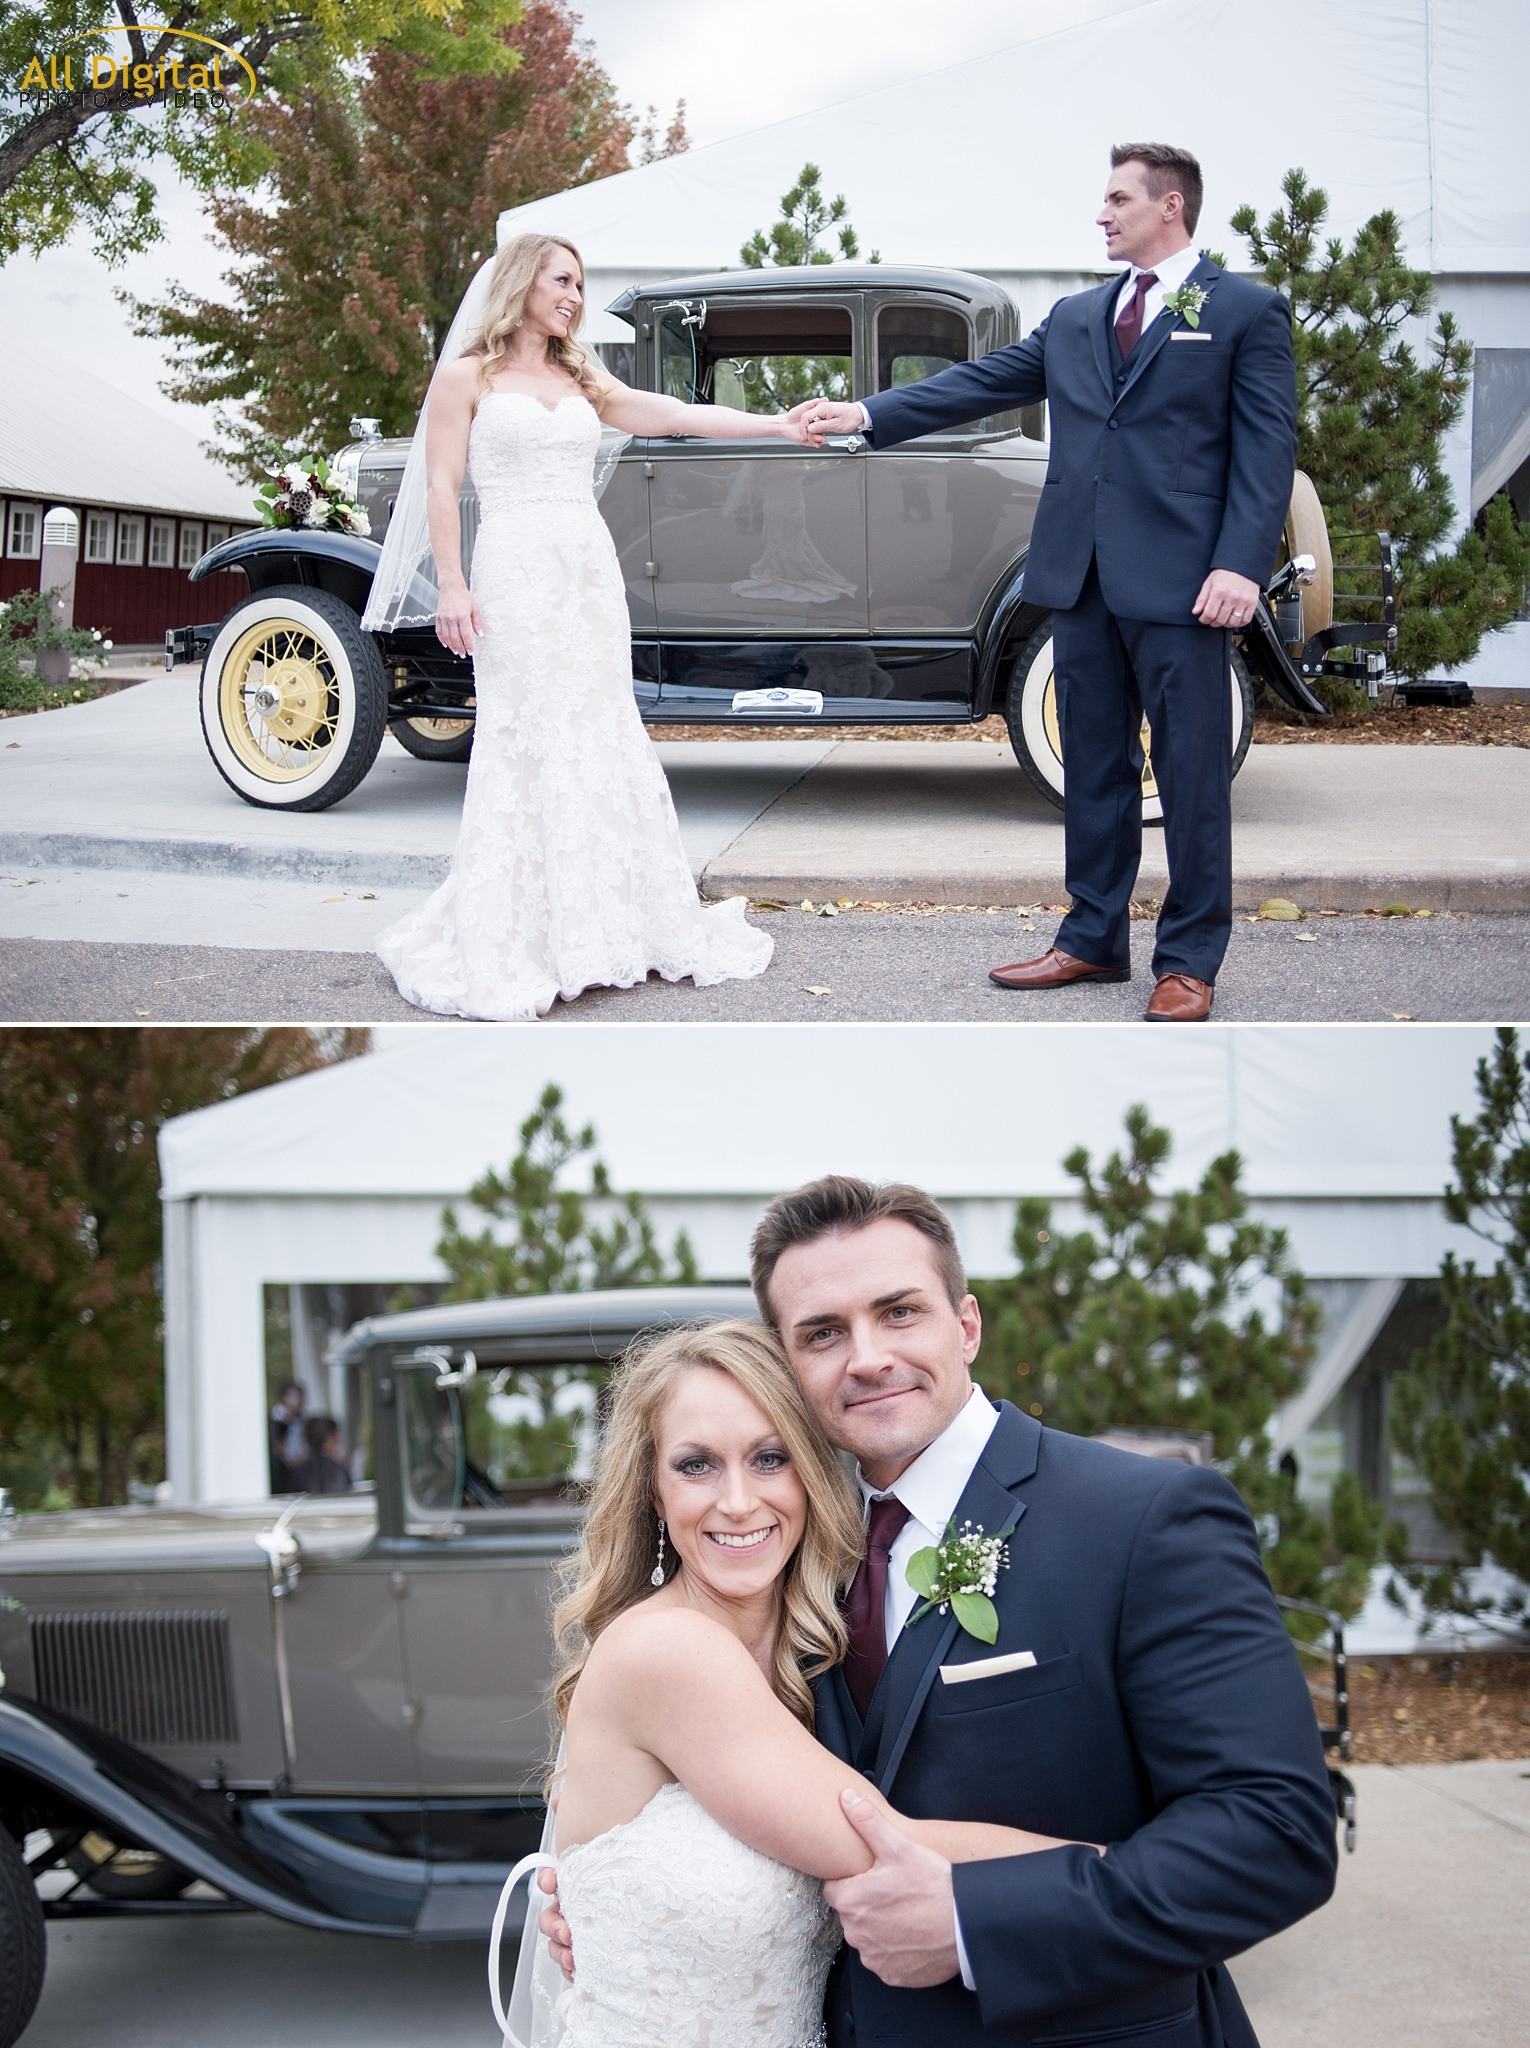 Tina & Nathan pose in front of a vintage car at Raccoon Creek